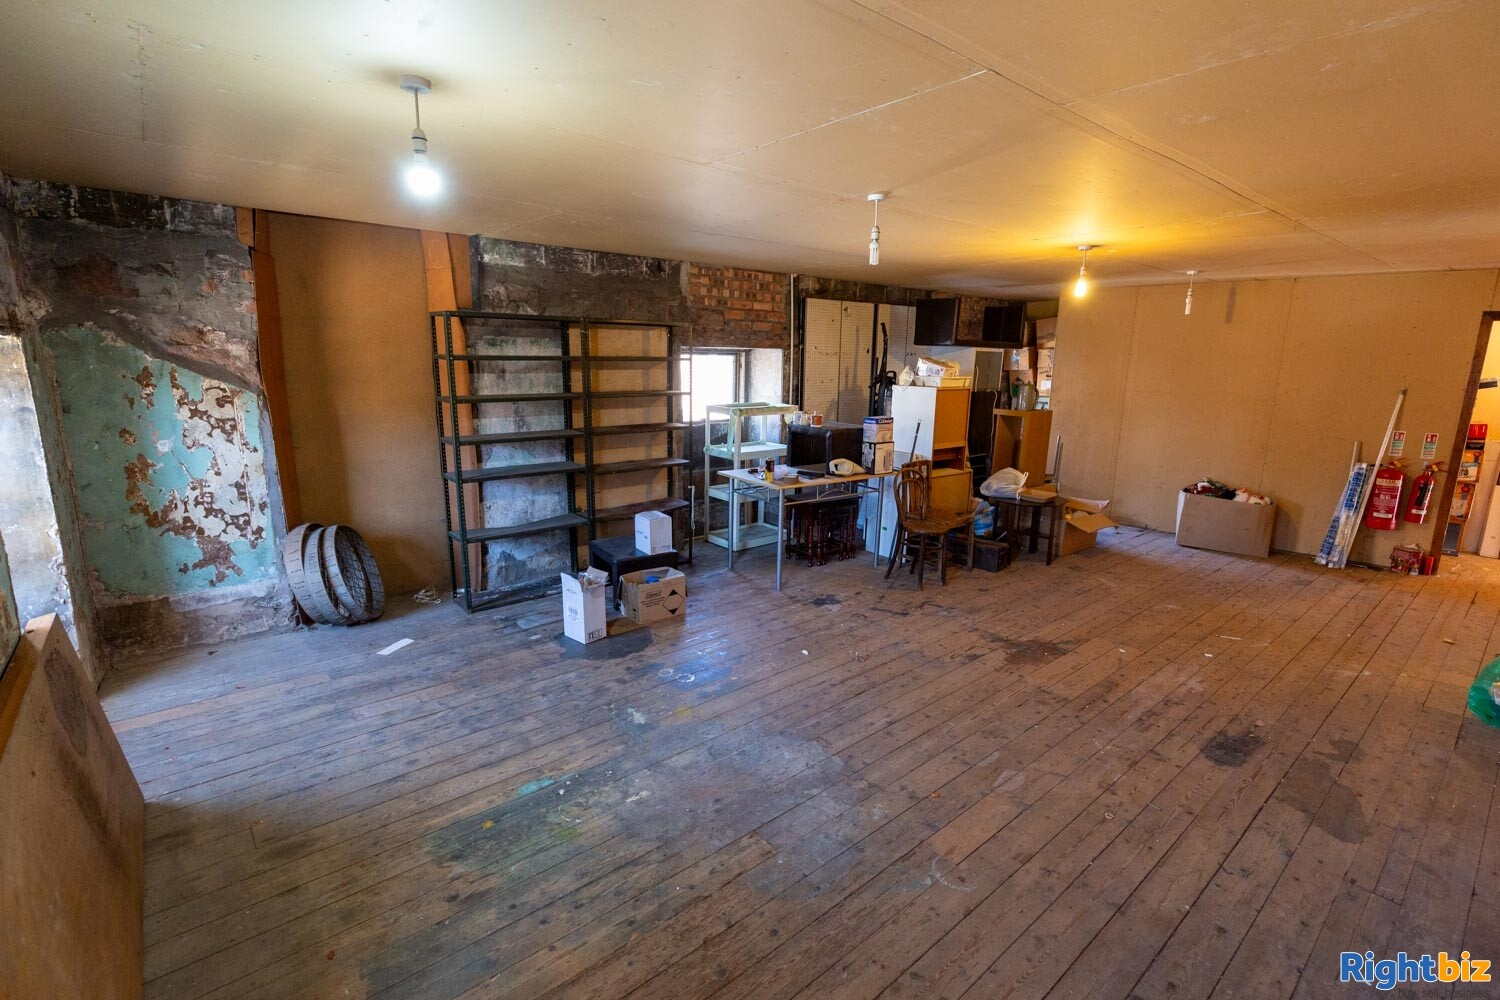 Freehold Hospitality & Residential Development Opportunity, Kirriemuir, Angus - Image 6